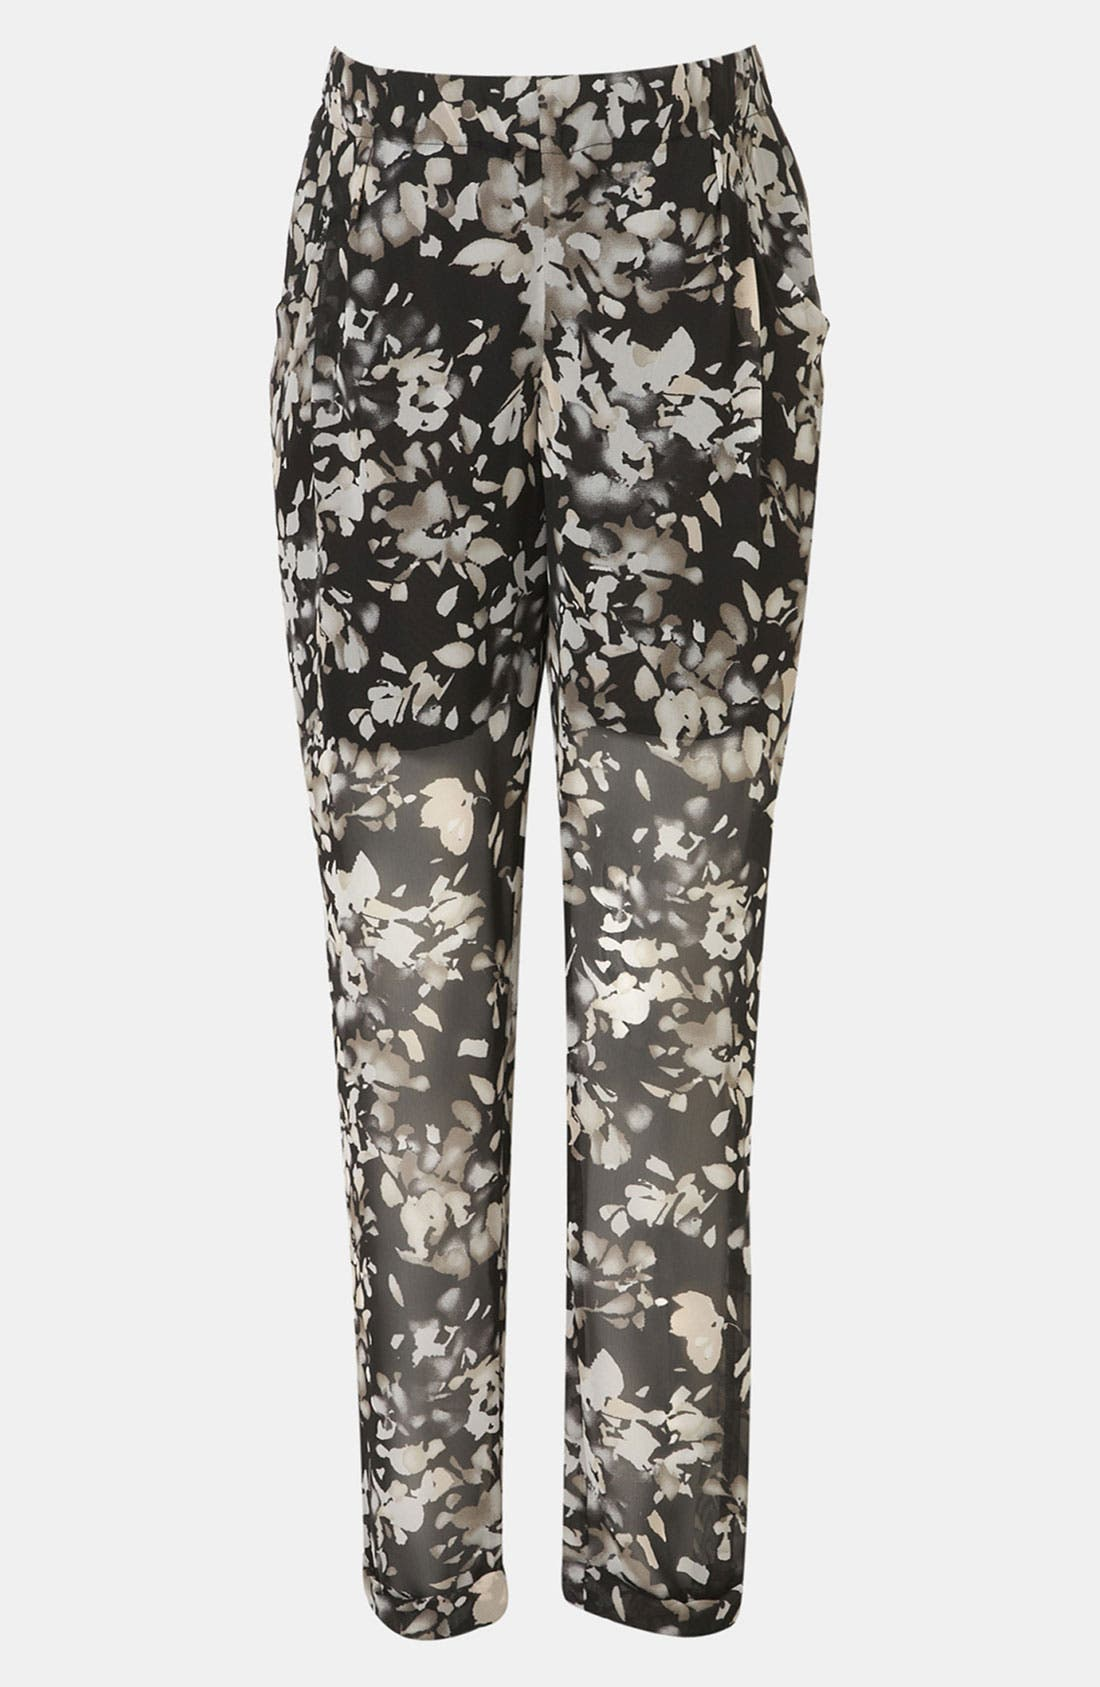 Alternate Image 1 Selected - Topshop 'Shadow Floral' Sheer Chiffon Maternity Trousers